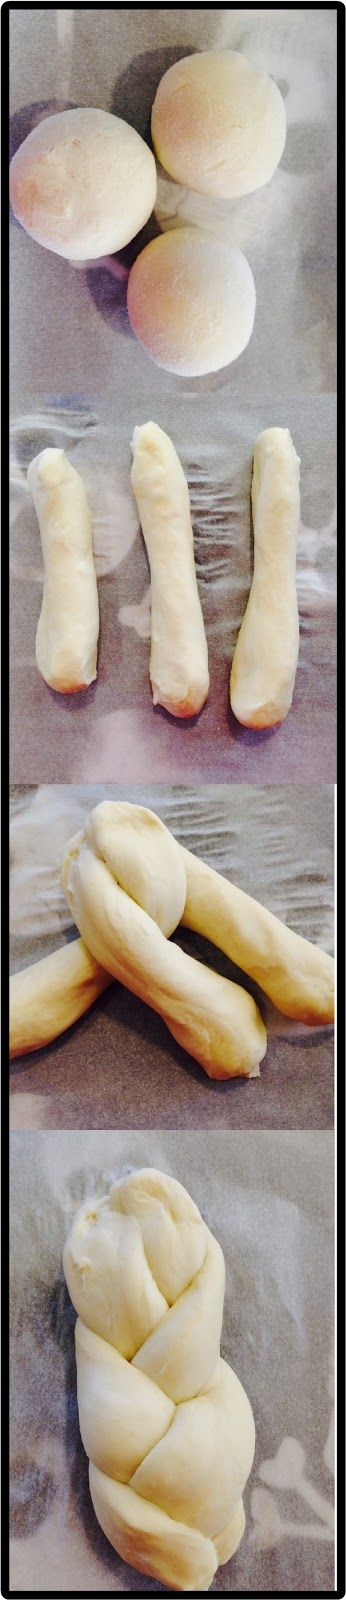 Make Challah in your LDS Old Testament Seminary Class to learn about the Jewish Sabbath.